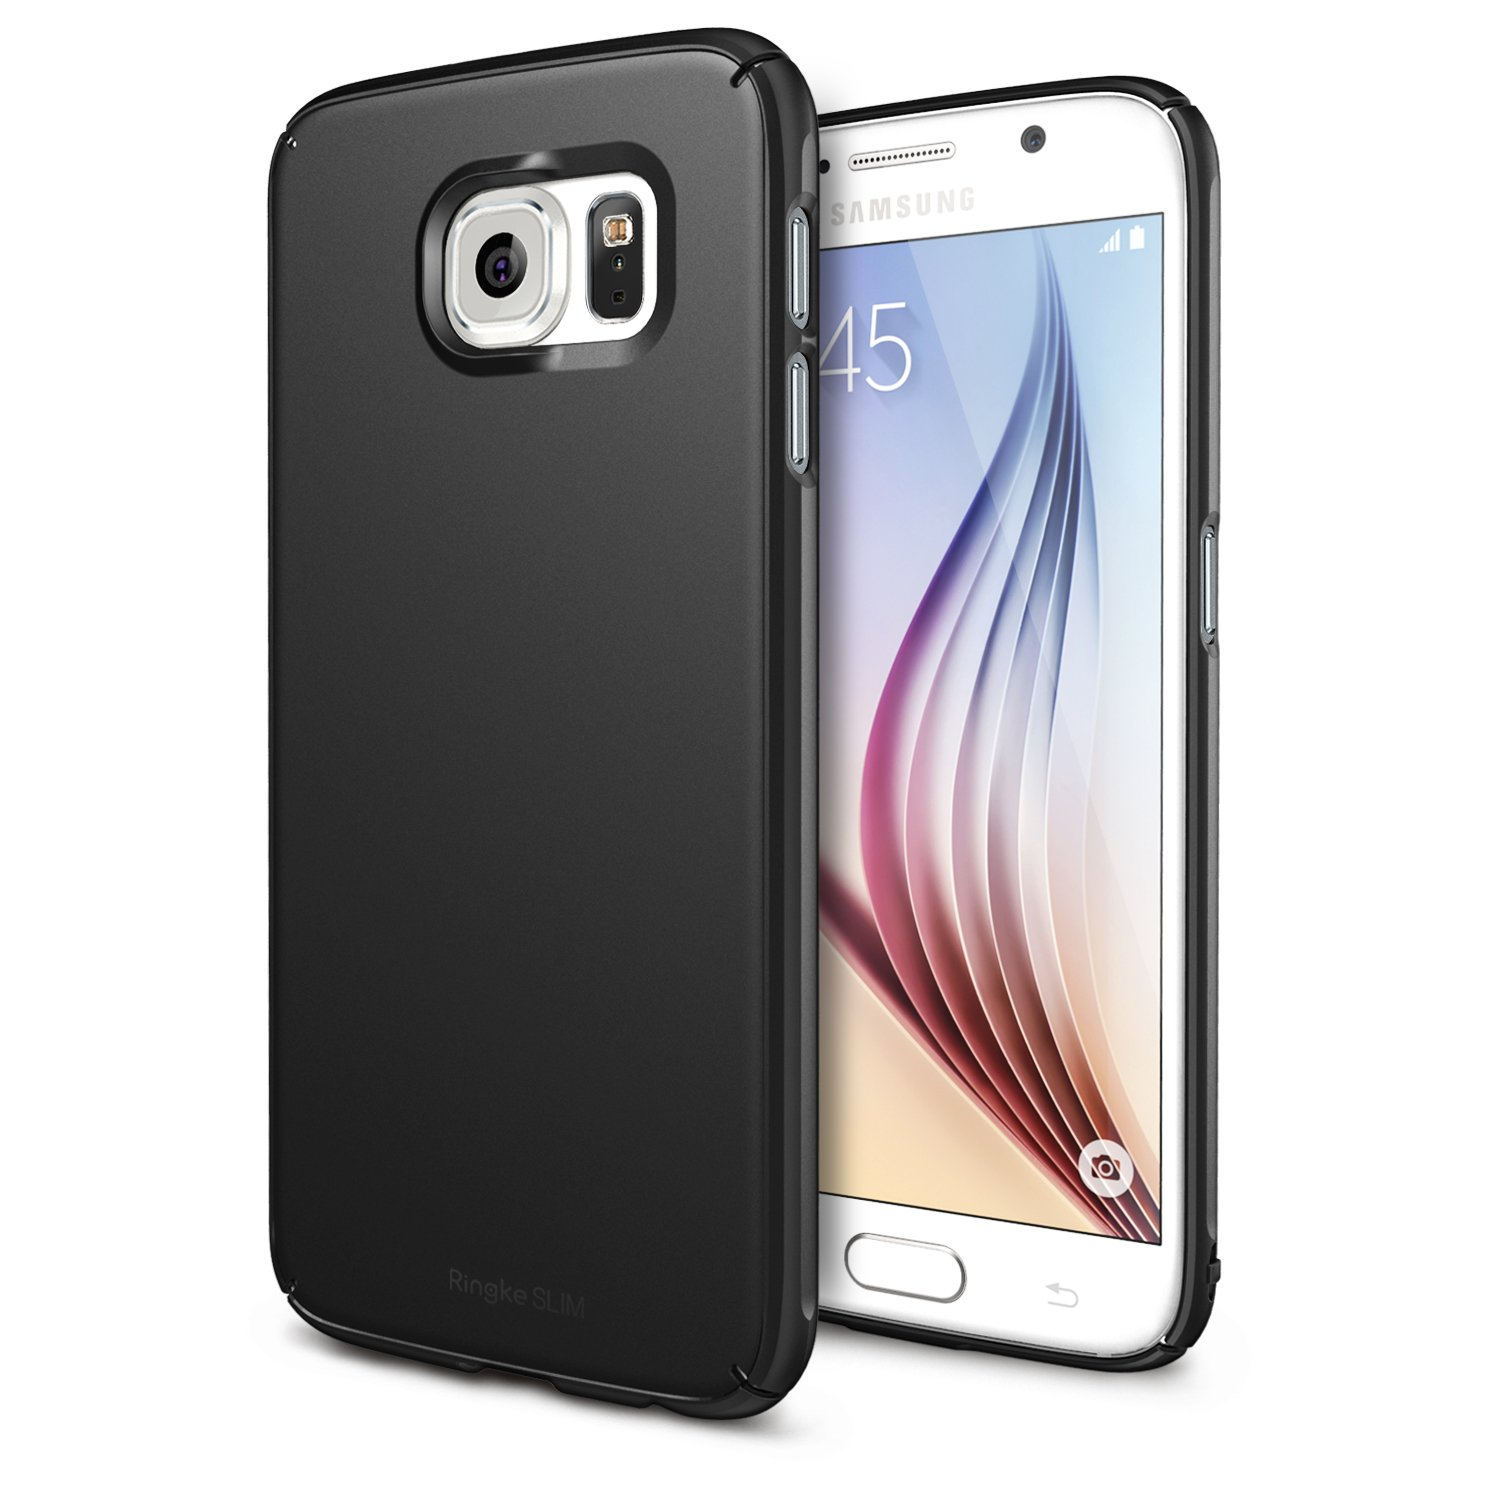 Galaxy S6 Otterbox: Slimmest Case Available For The S6